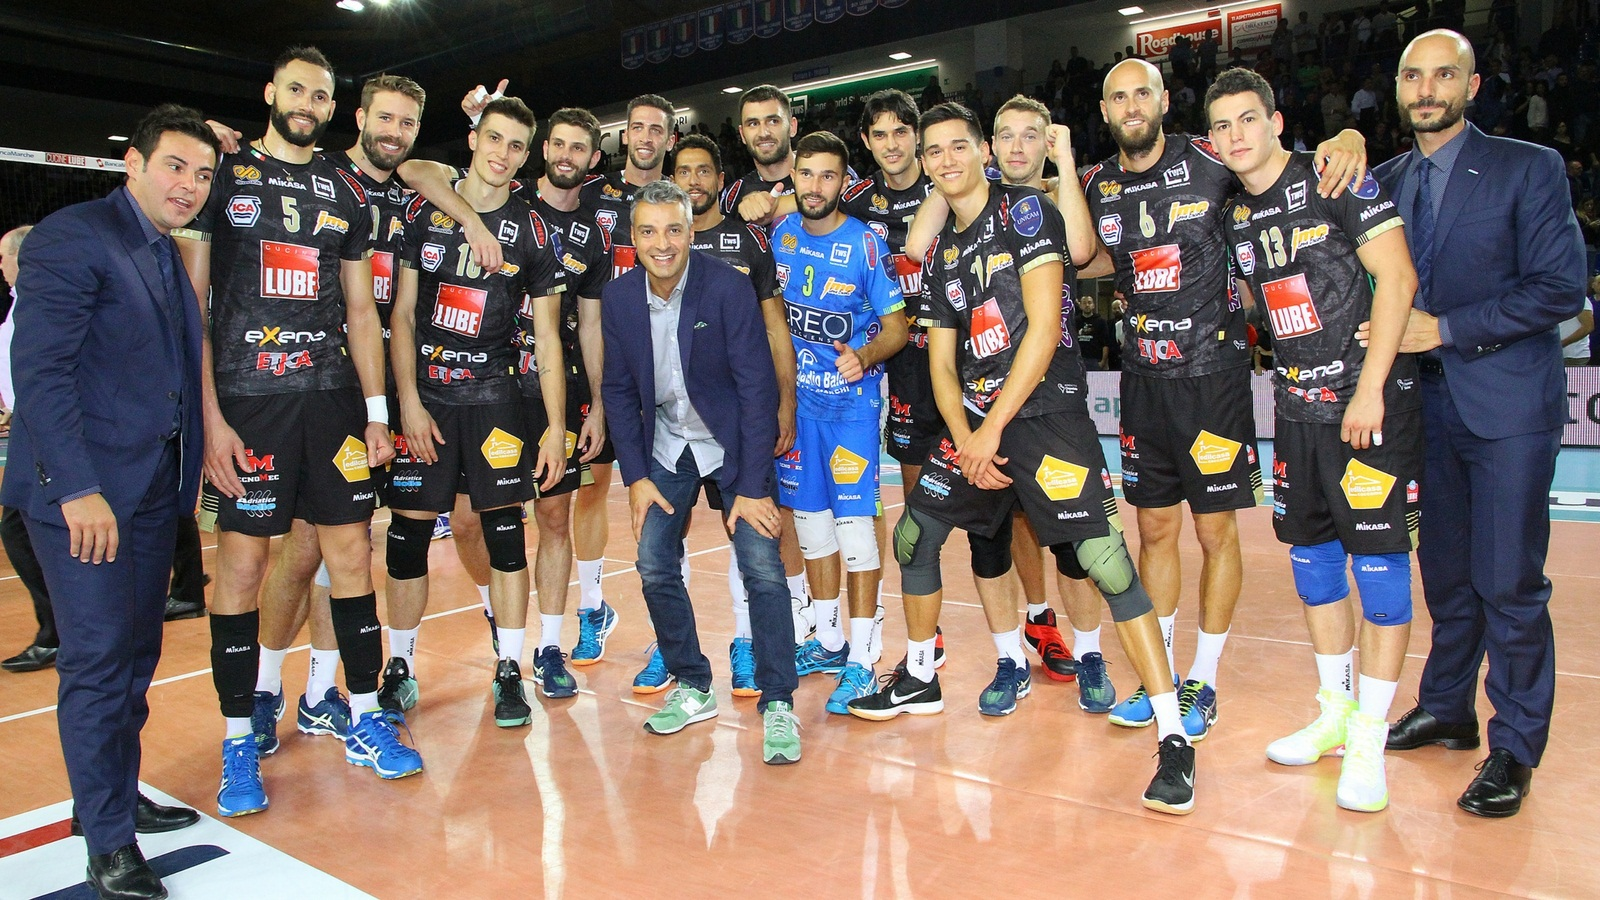 lube-volley-adriatica-molle